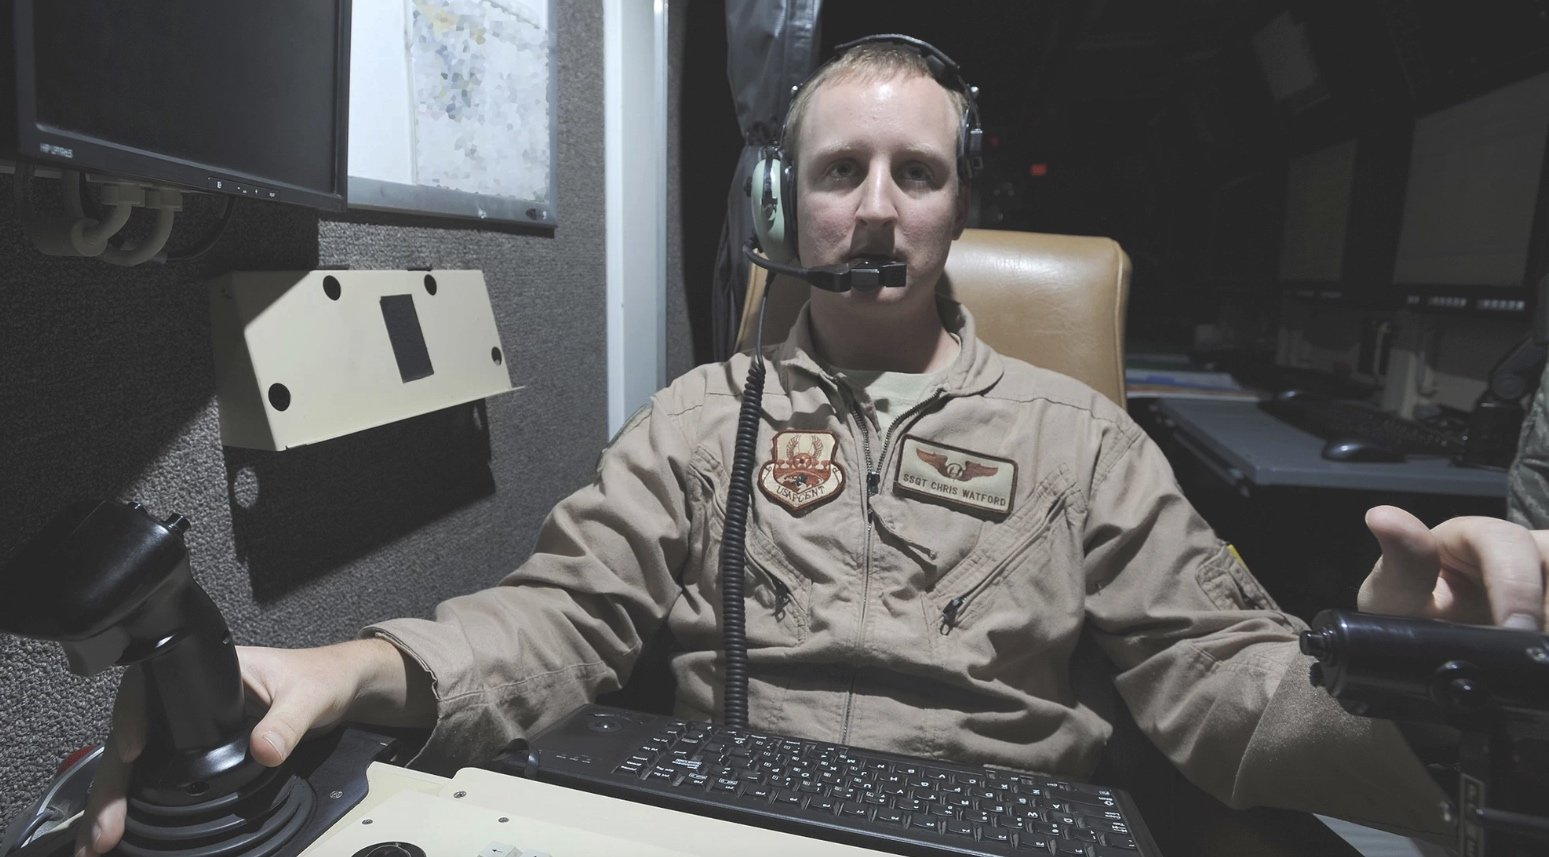 Staff Sgt. Christopher Watford controls the sensors of a MQ-1B Predator drone during a routine mission, August 2010, Joint Base Balad, Iraq (via U.S. Air Force / Senior Airman Matt Coleman-Foster)